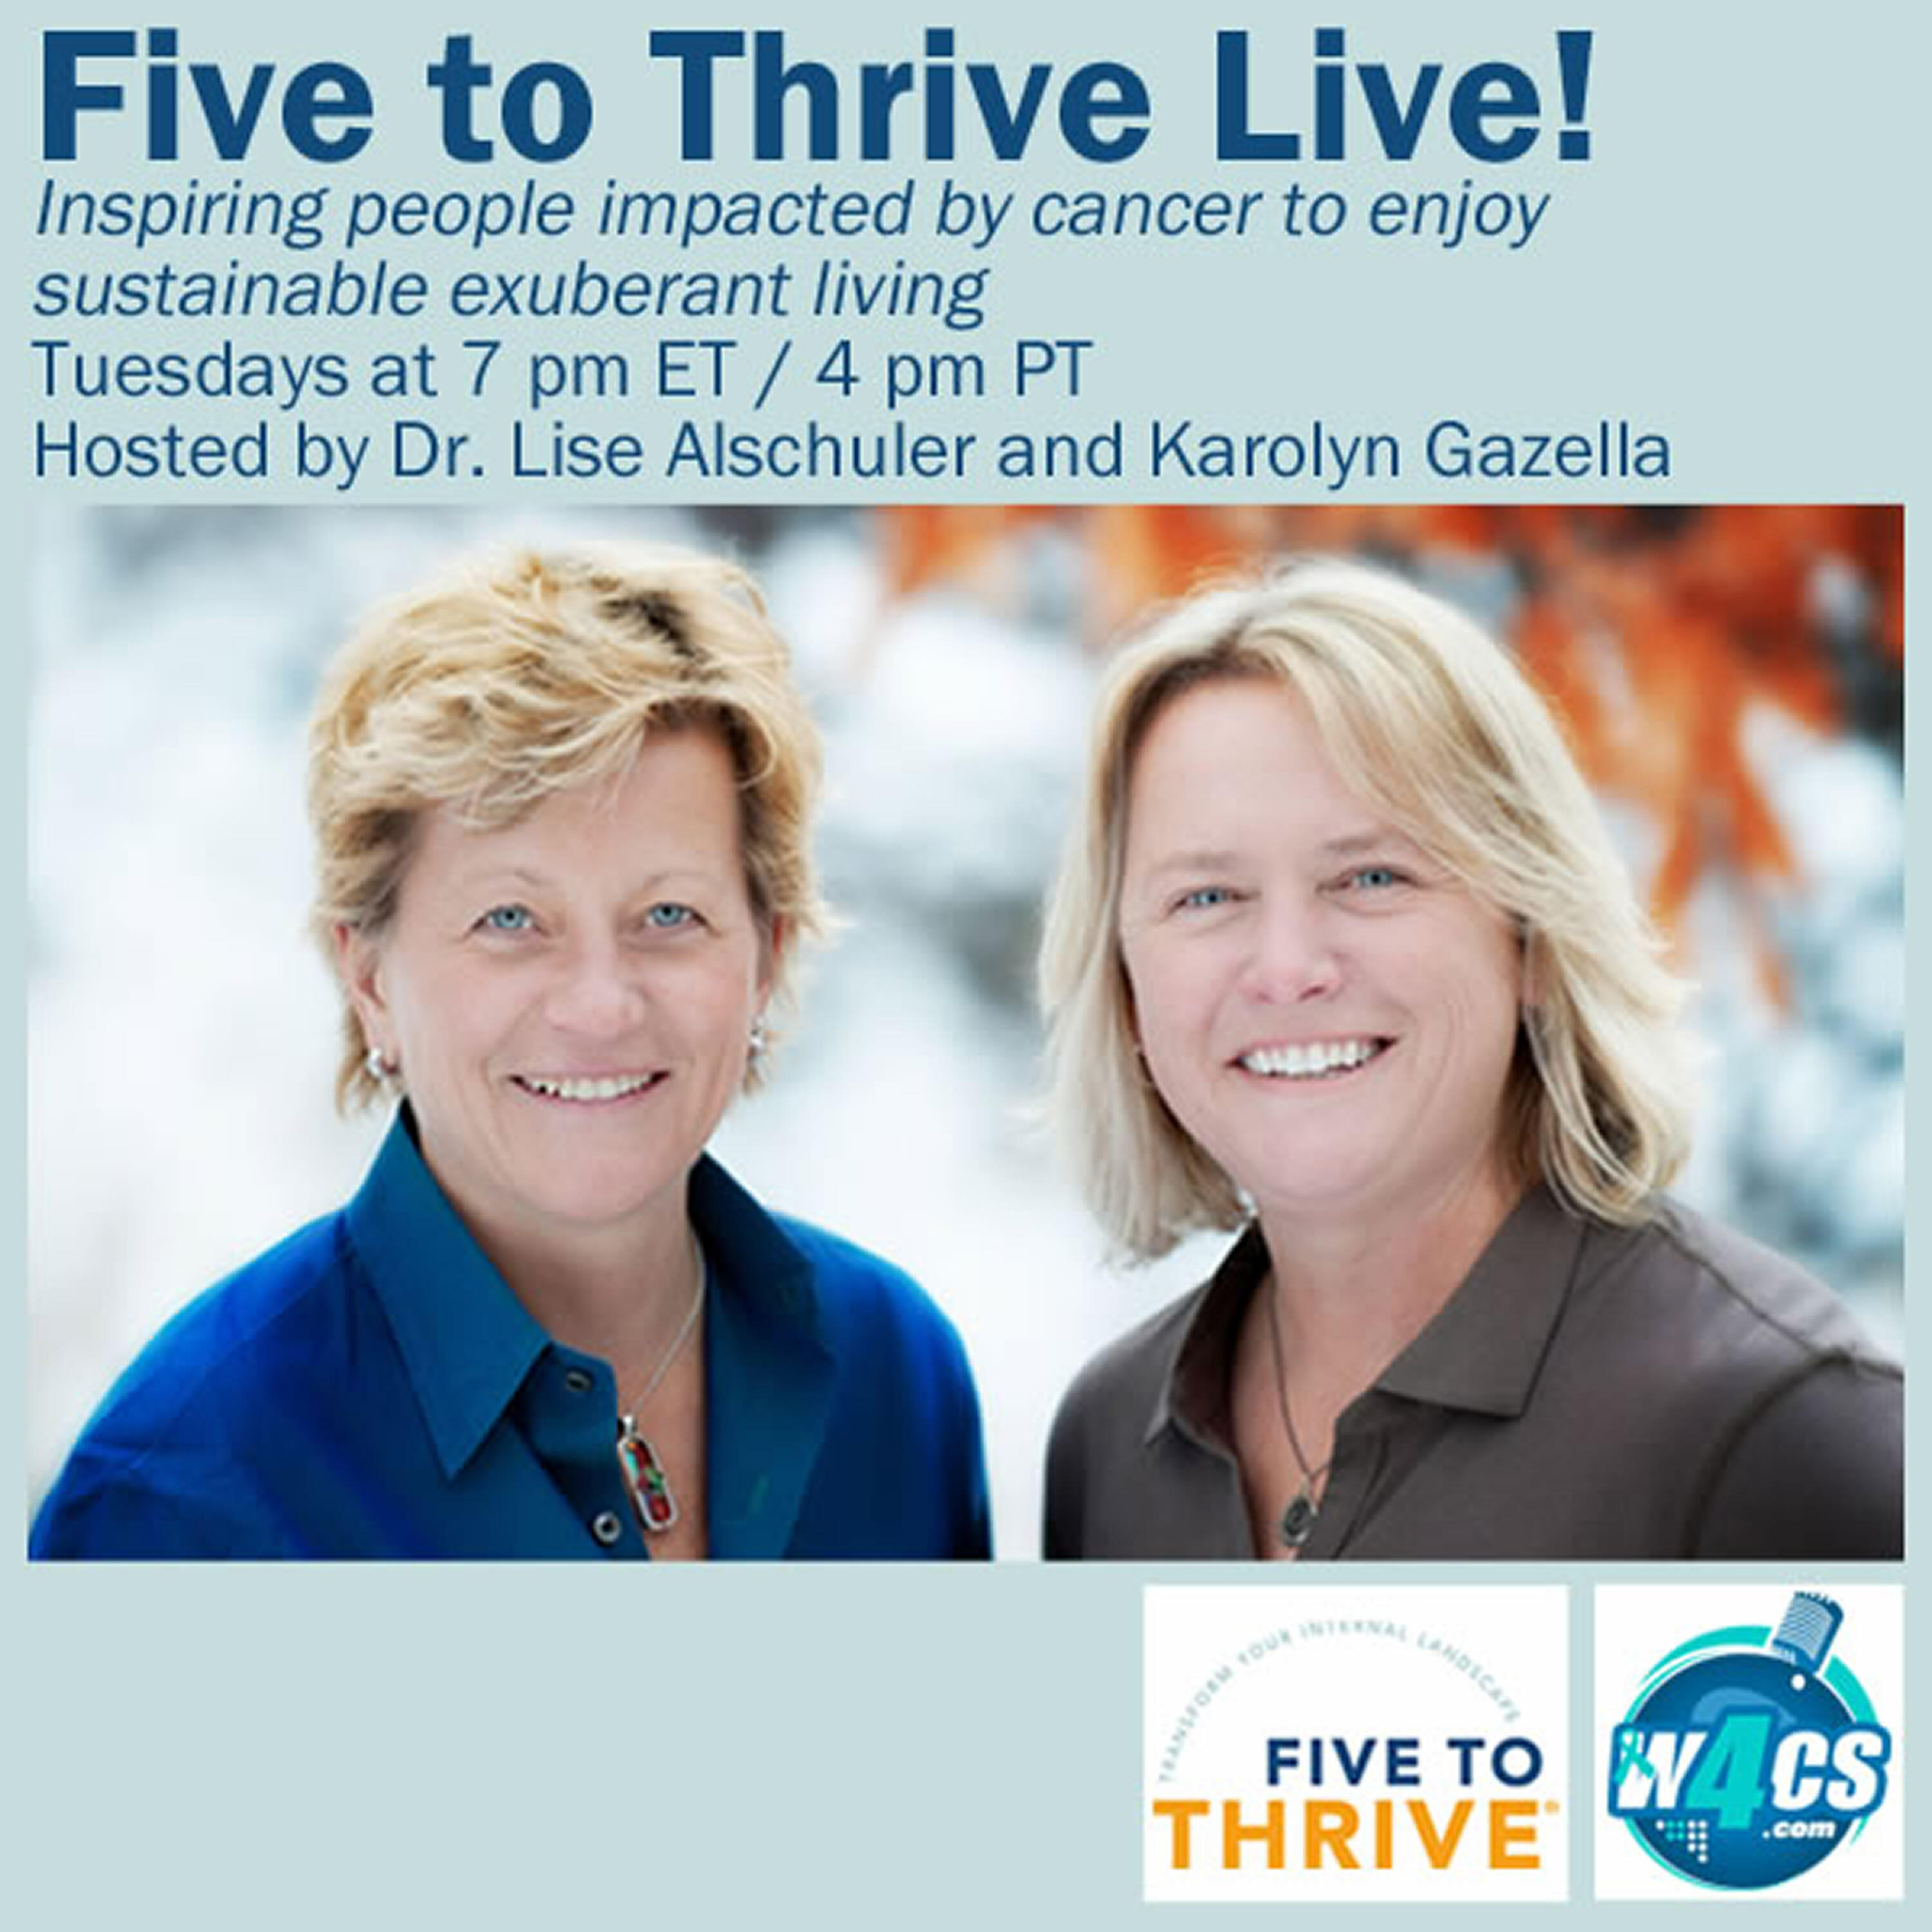 Five To Thrive Live